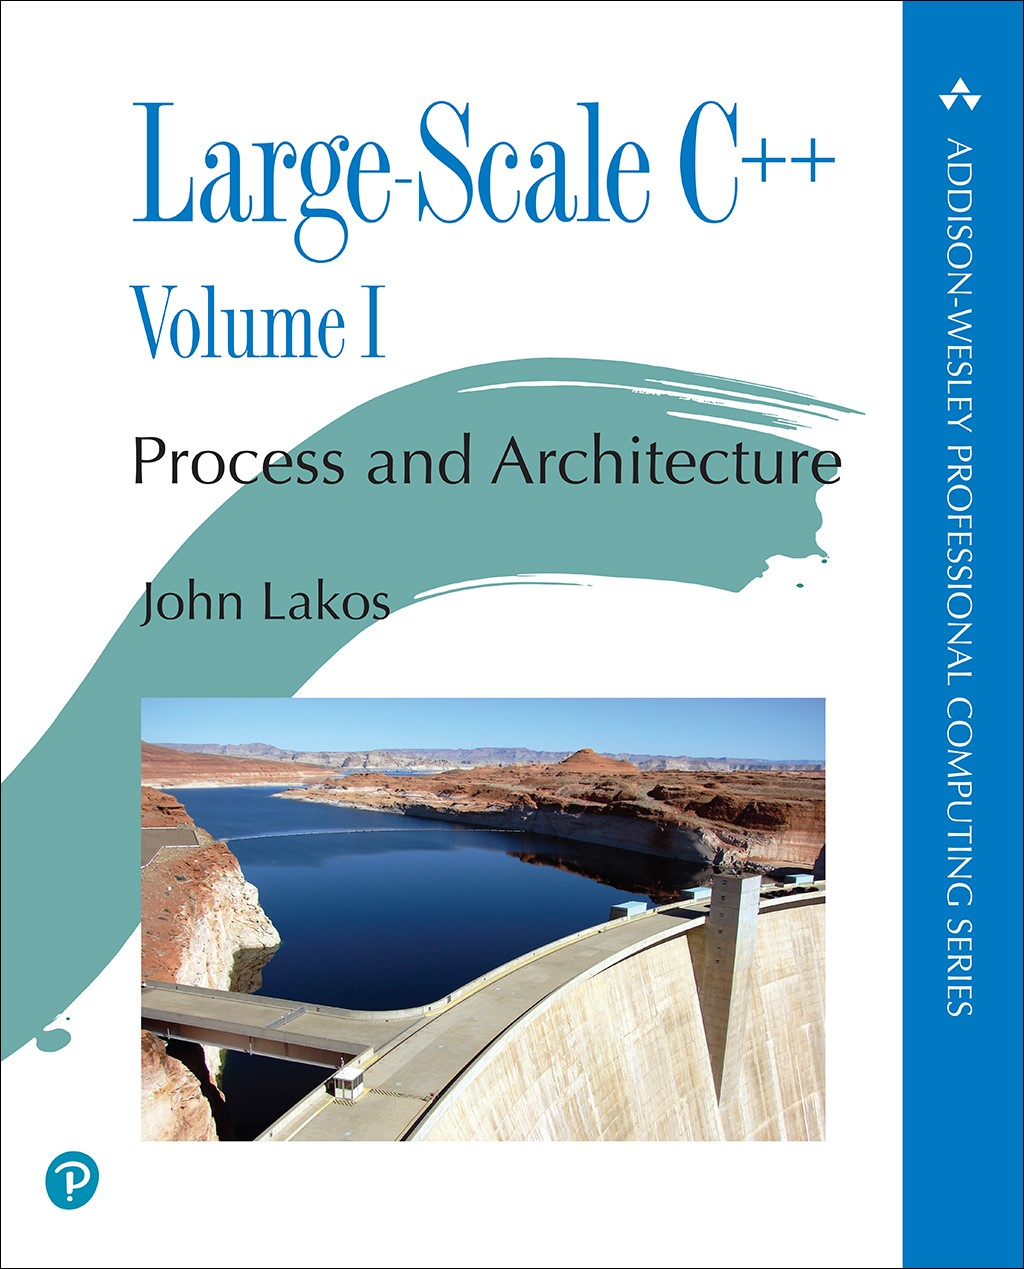 Large-Scale C++ Volume I: Process and Architecture